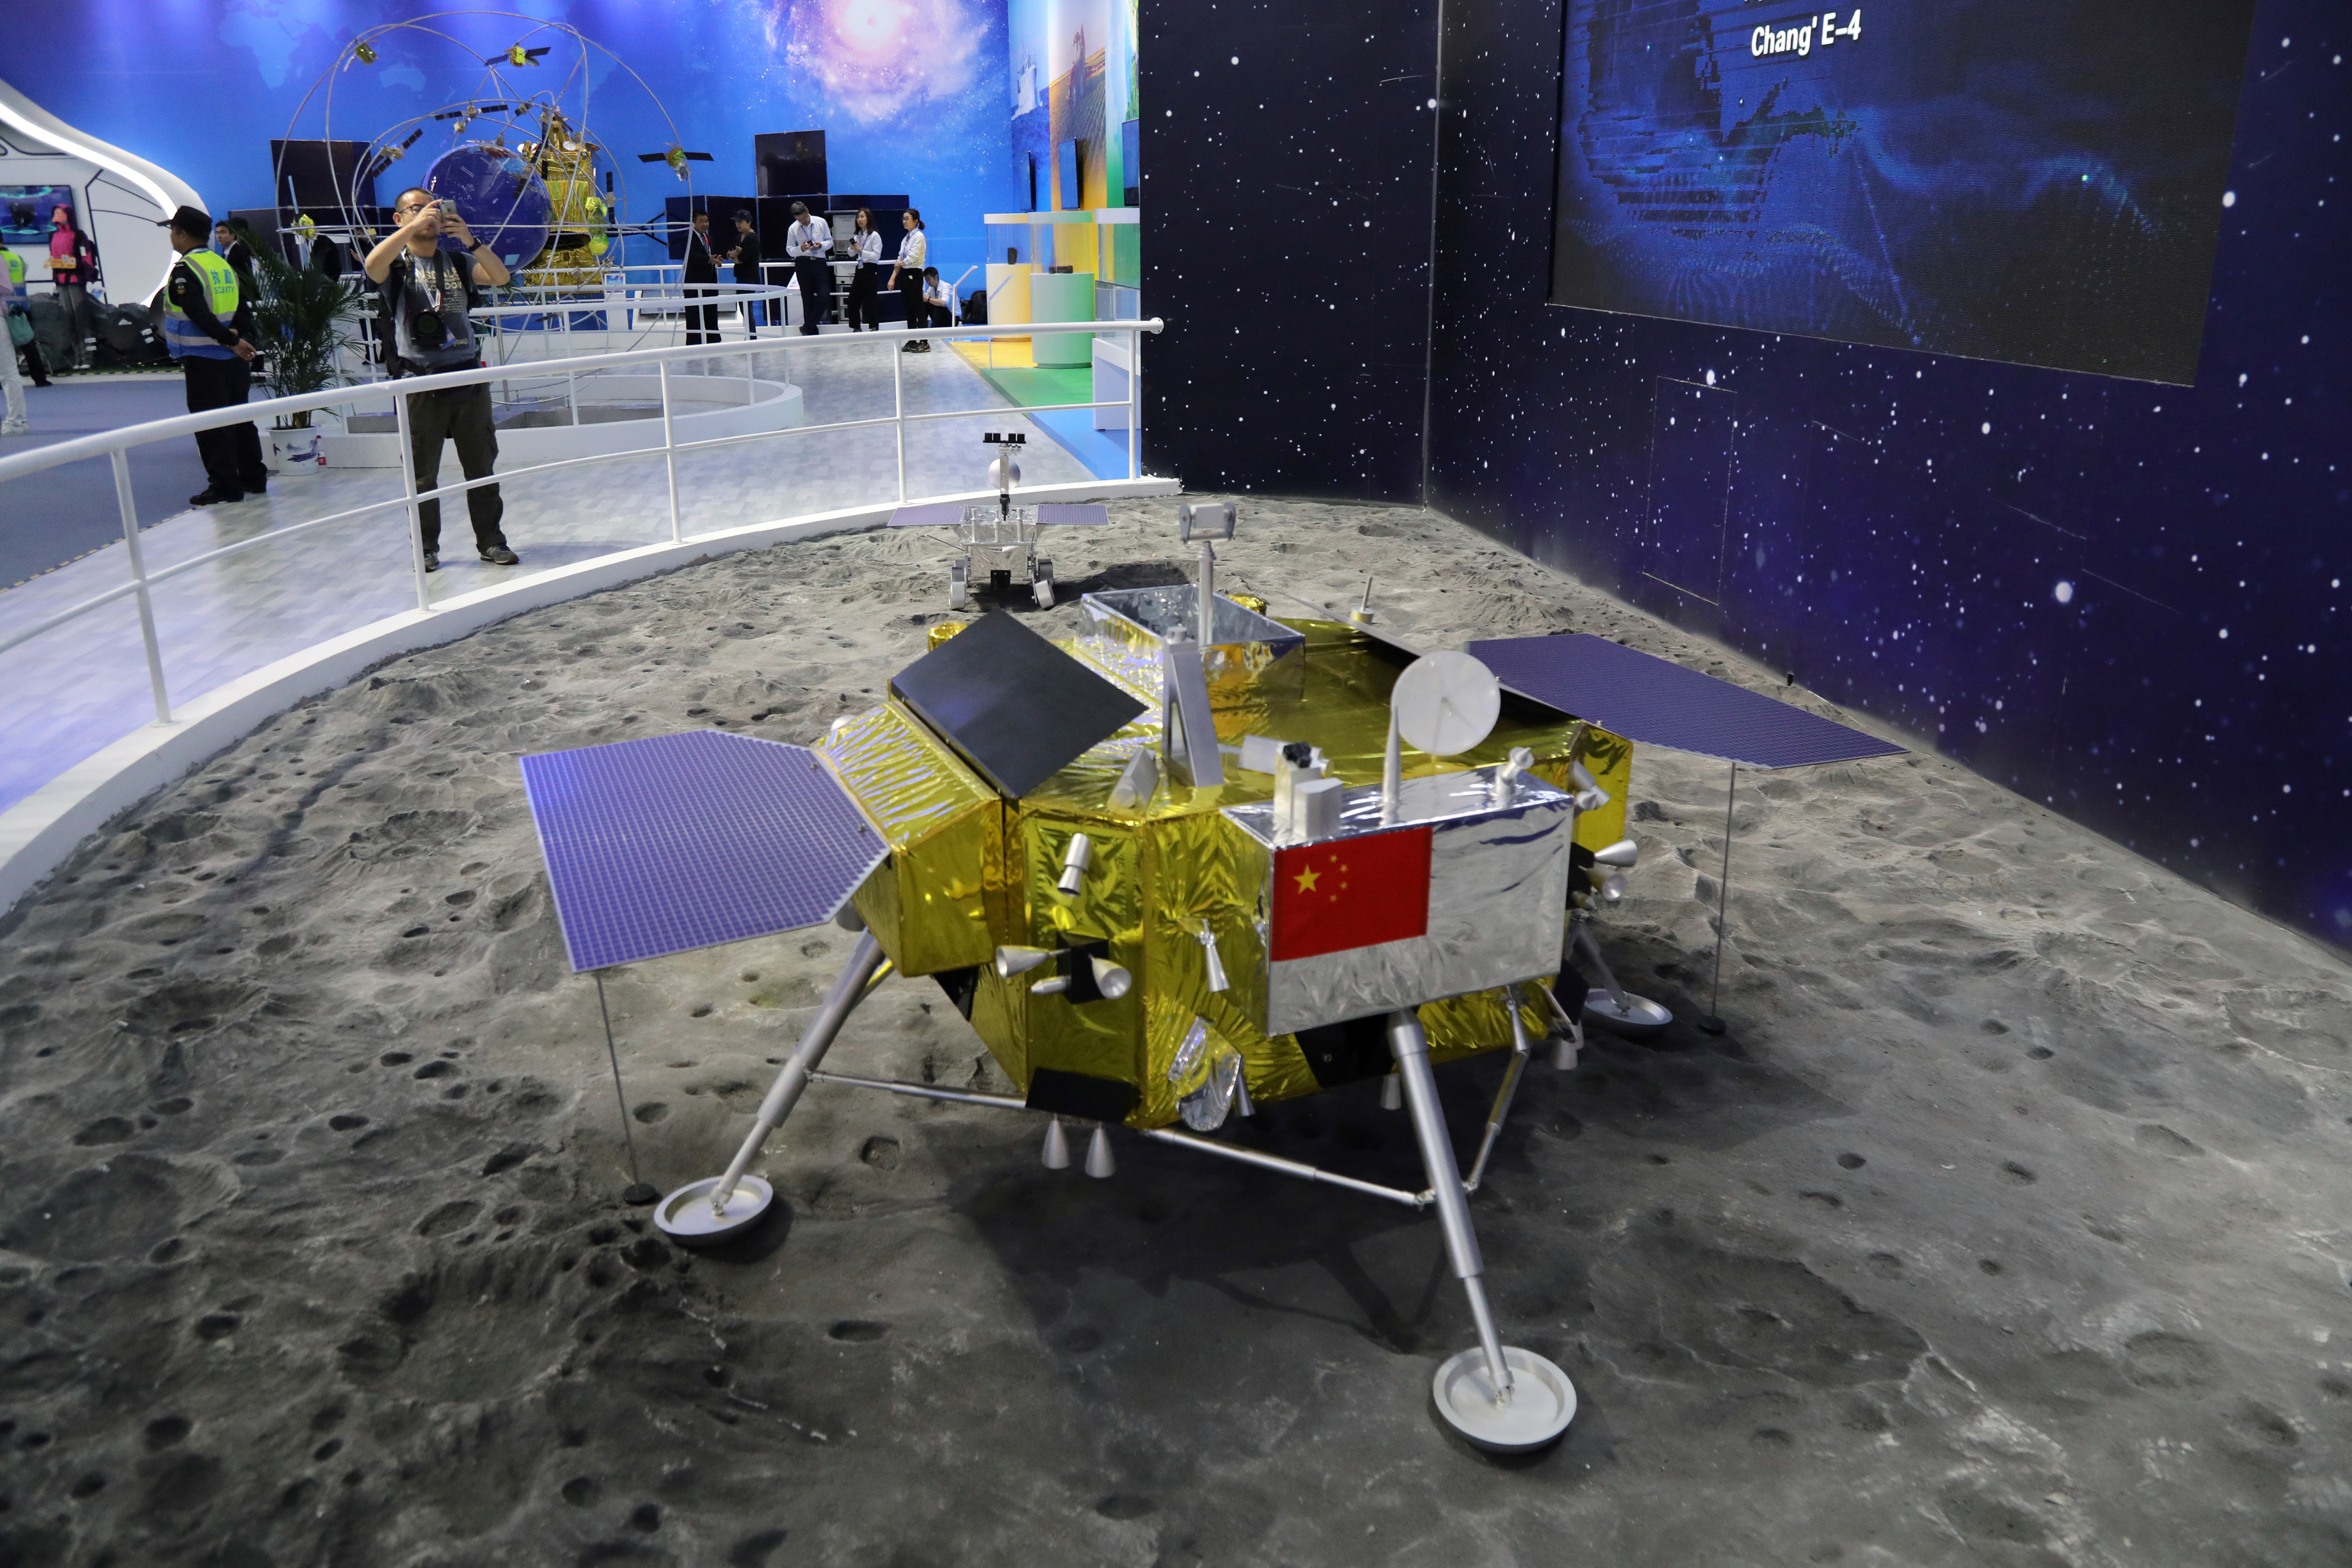 A model of the moon lander for China's Chang'e 4 lunar probe is displayed at the China International Aviation and Aerospace Exhibition, or Zhuhai Airshow, in Zhuhai, Guangdong province, China November 6, 2018. Picture taken November 6, 2018. Wang Xu/China Space News via REUTERS ATTENTION EDITORS - THIS IMAGE WAS PROVIDED BY A THIRD PARTY. CHINA OUT. - RC115D02C000